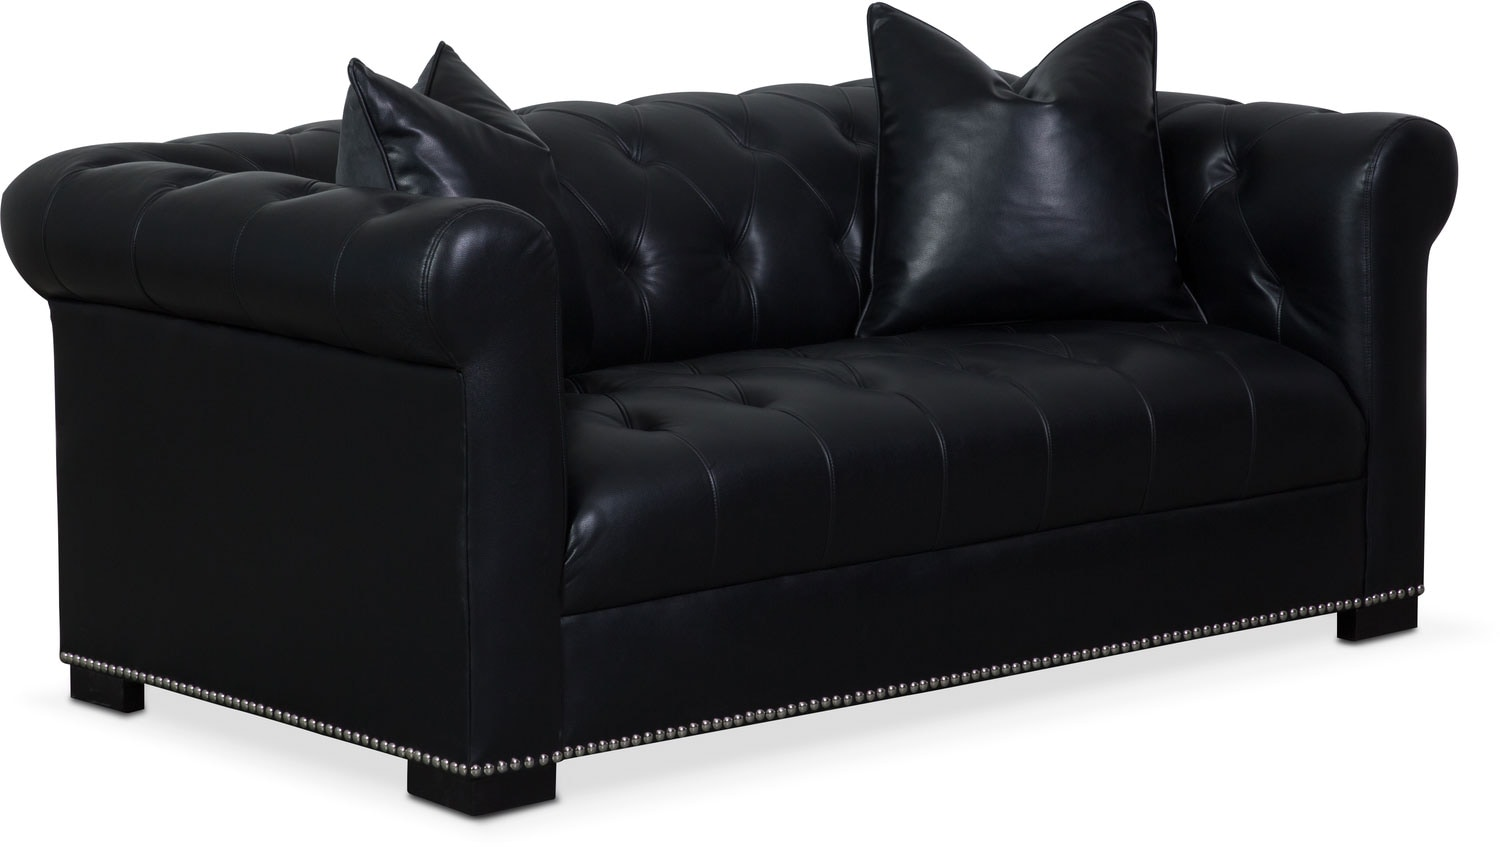 Sofas Couches Living Room Seating American Signature